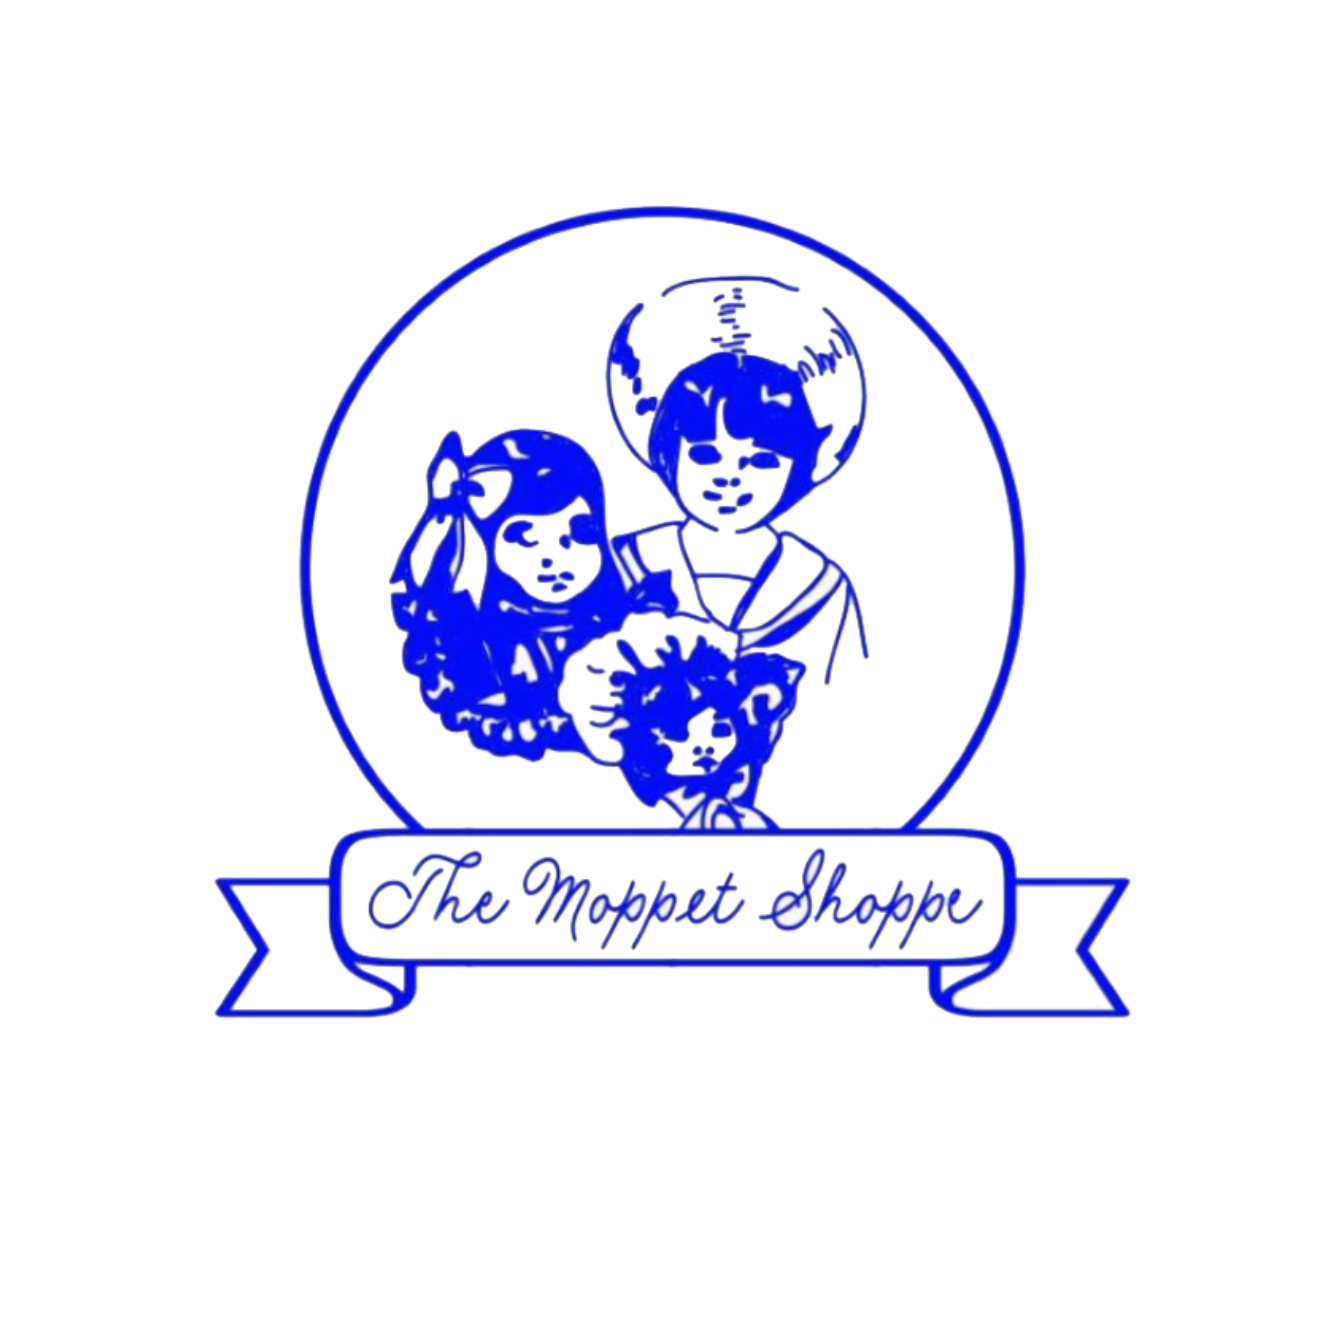 The Moppet Shoppe circle